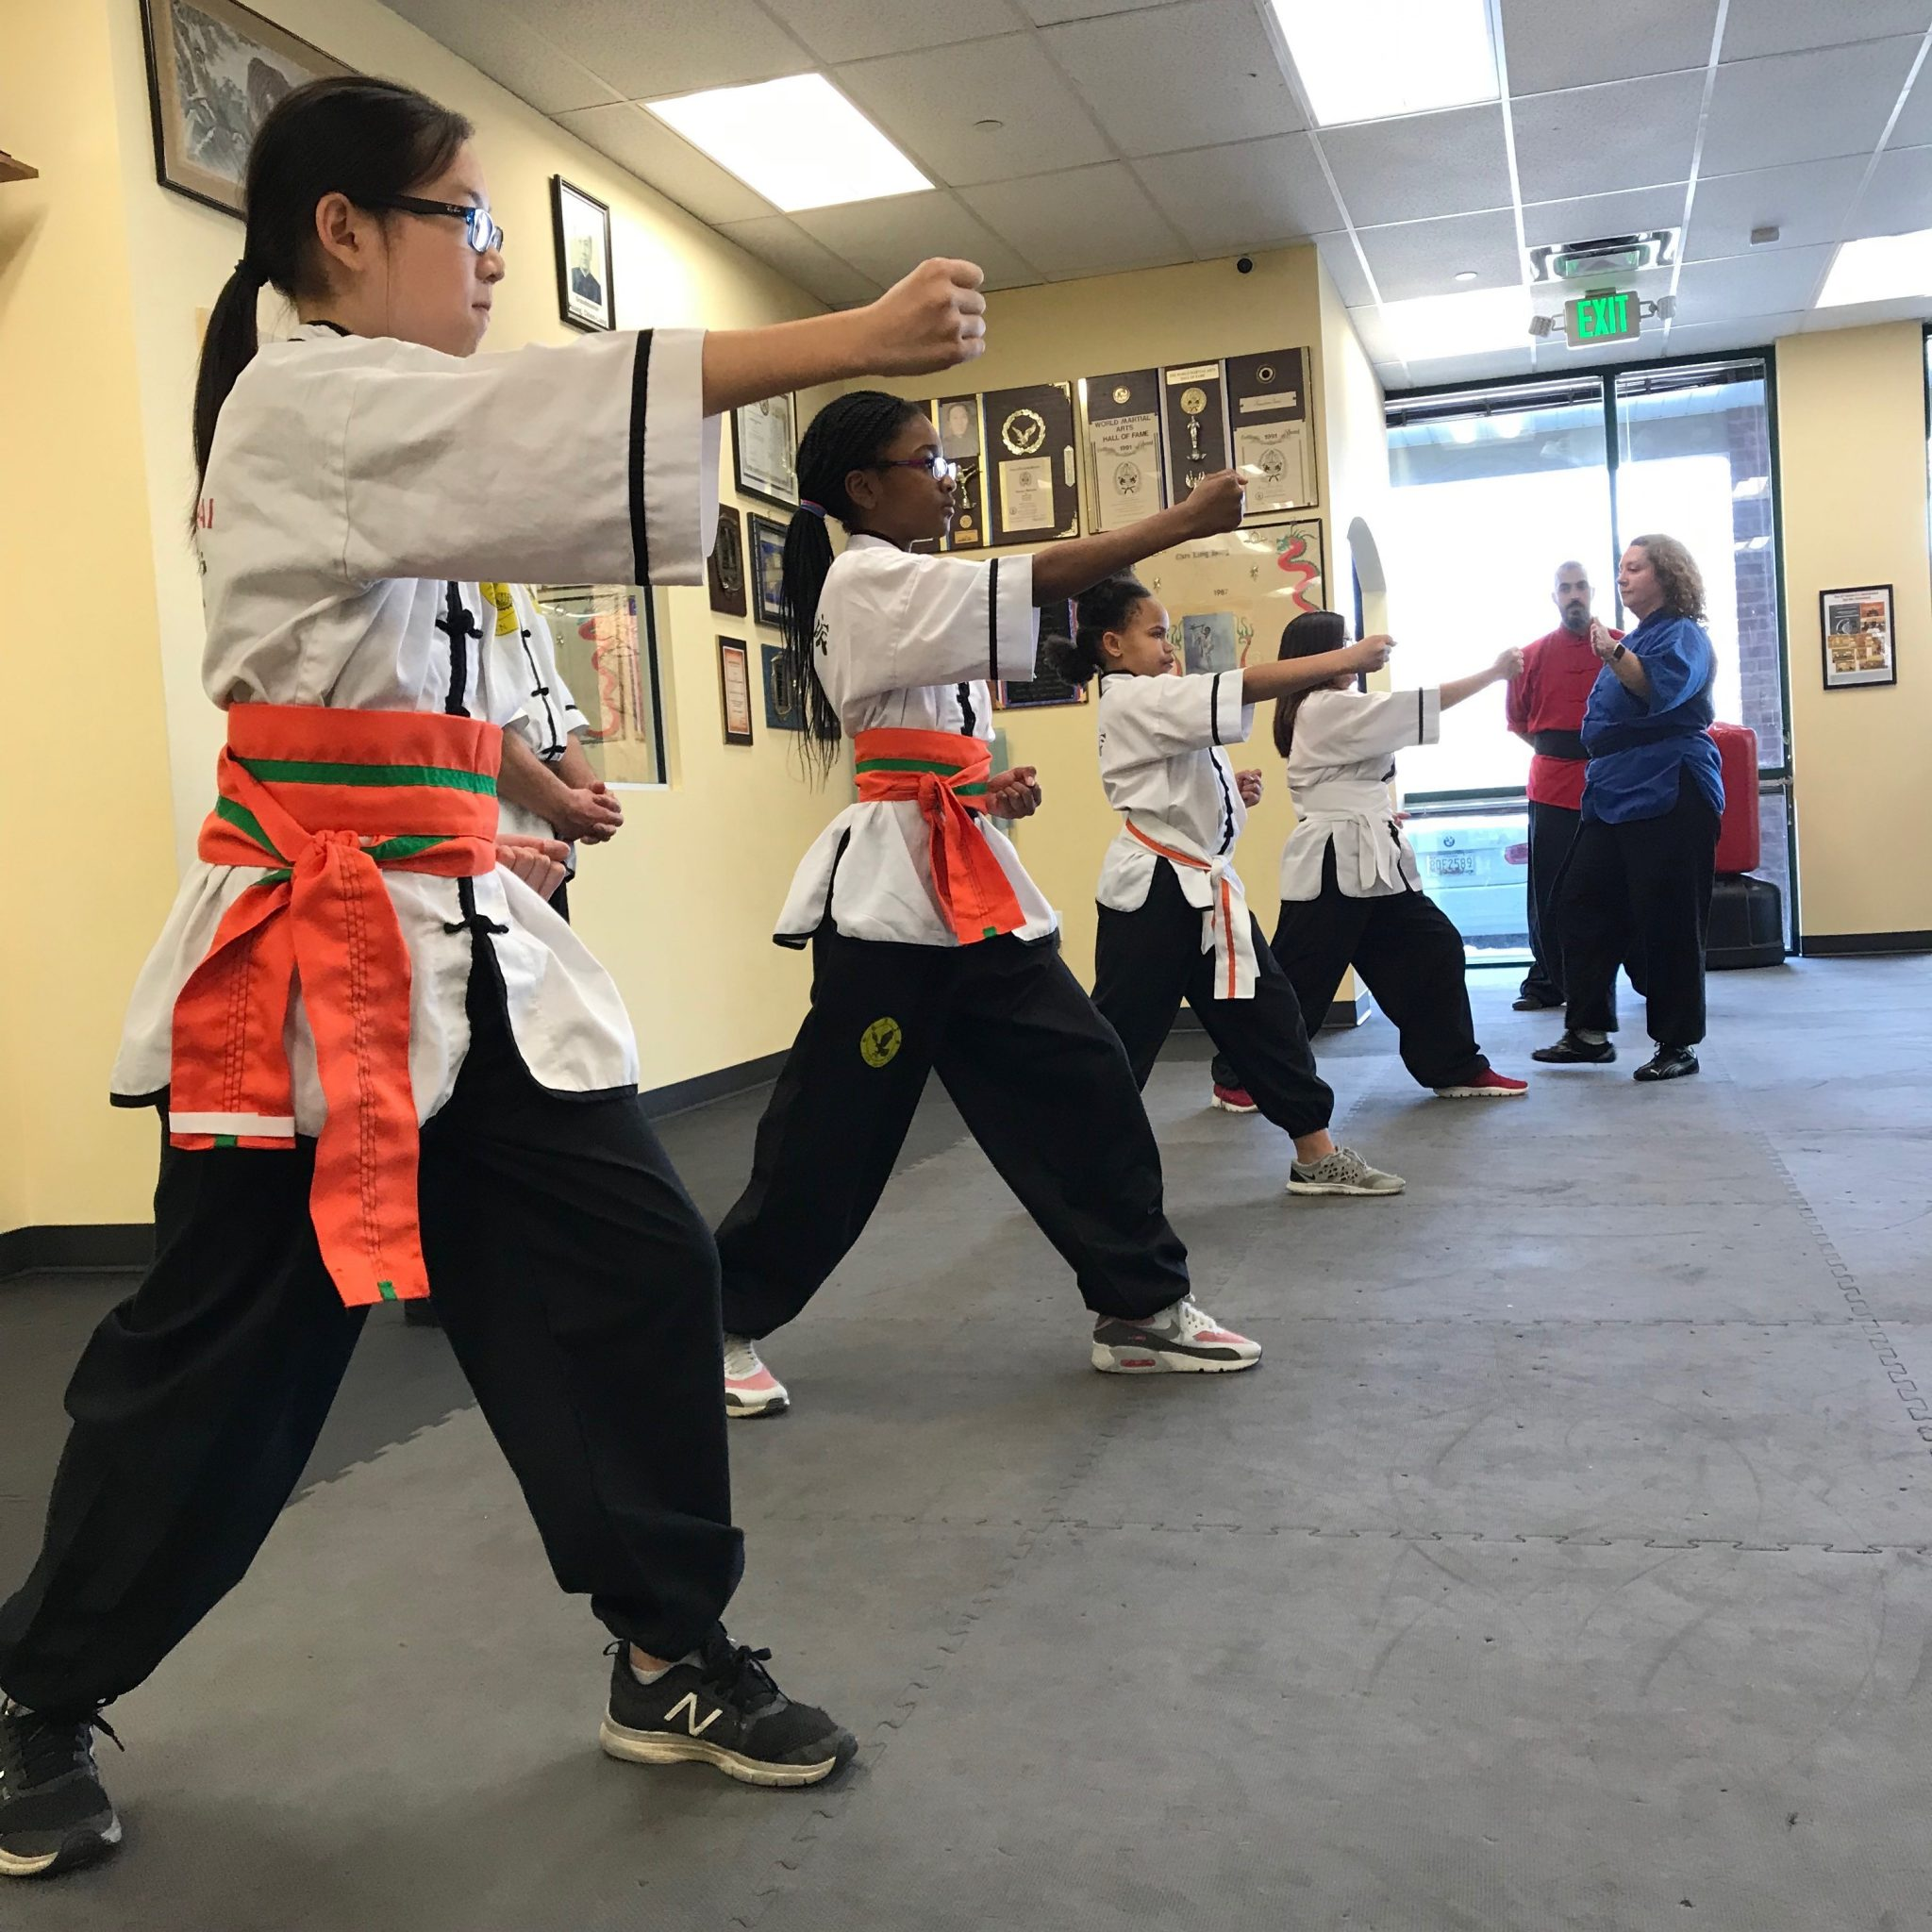 How to Choose the Best Owings Mills Karate for My Child